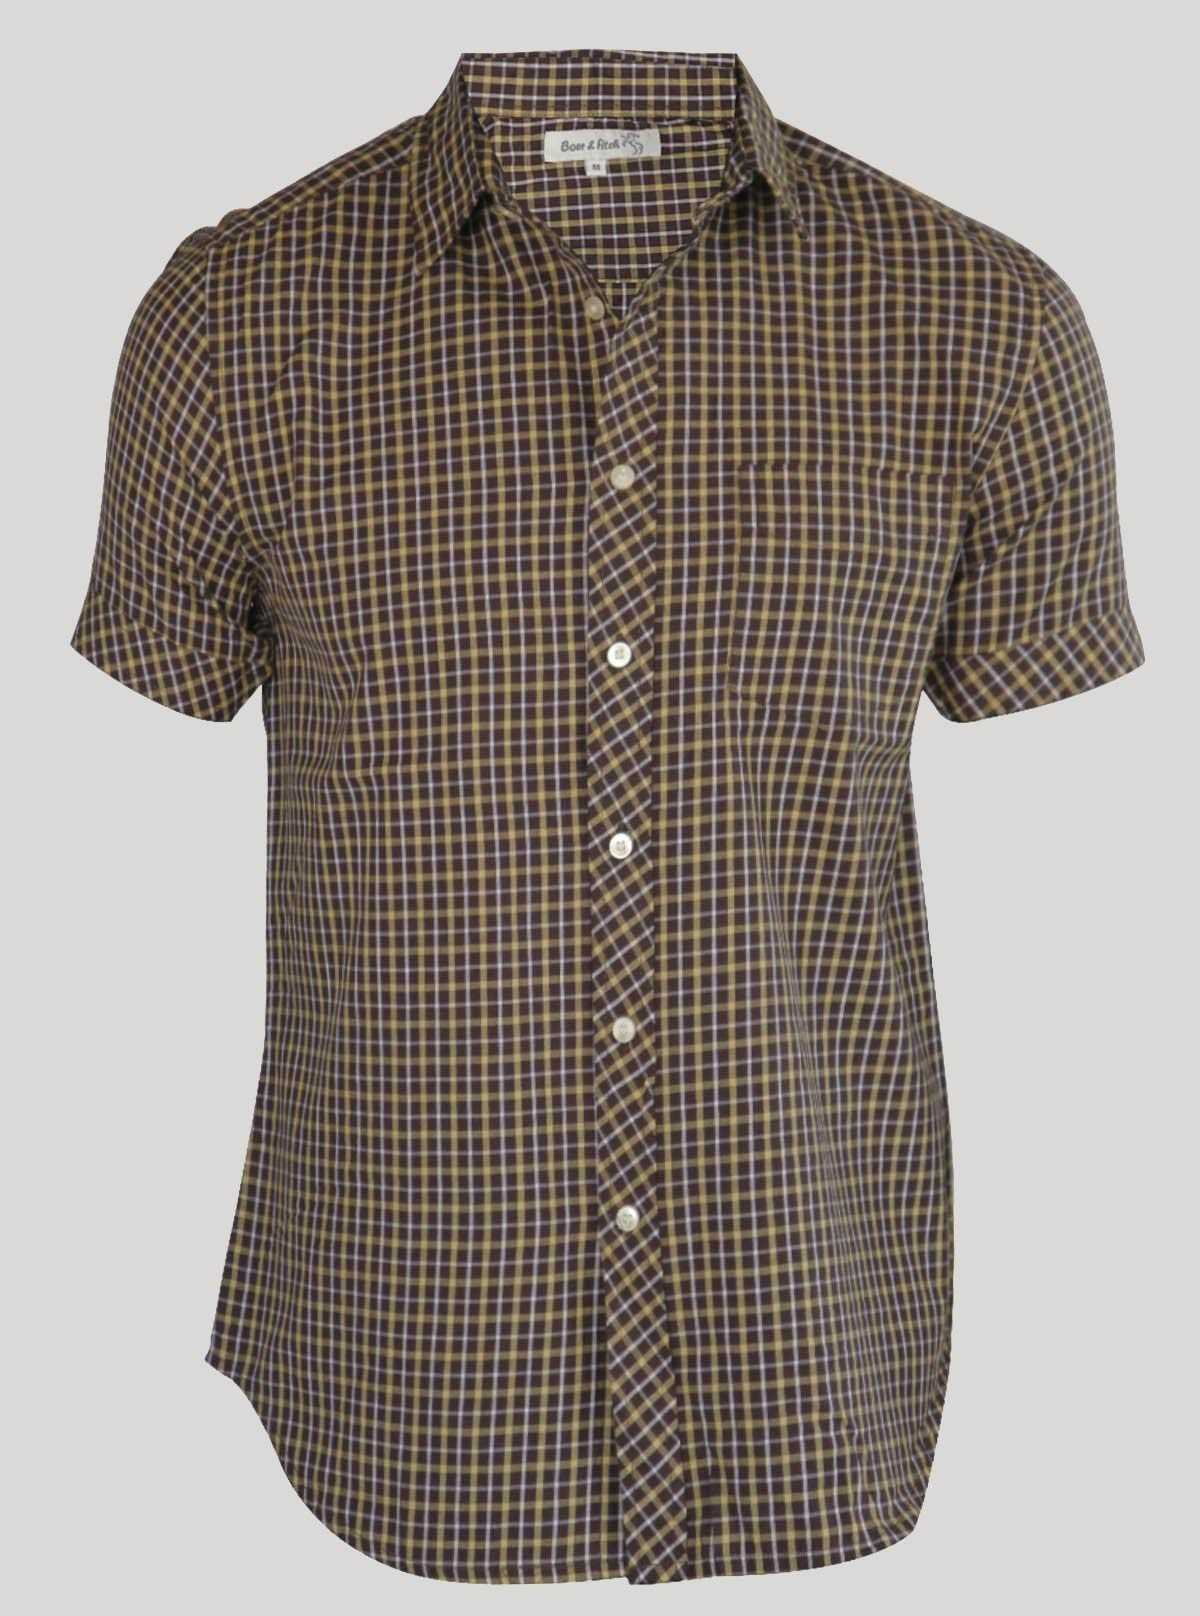 Slim Fit - Yellow Brown Checker Shirt Boer and Fitch - 1